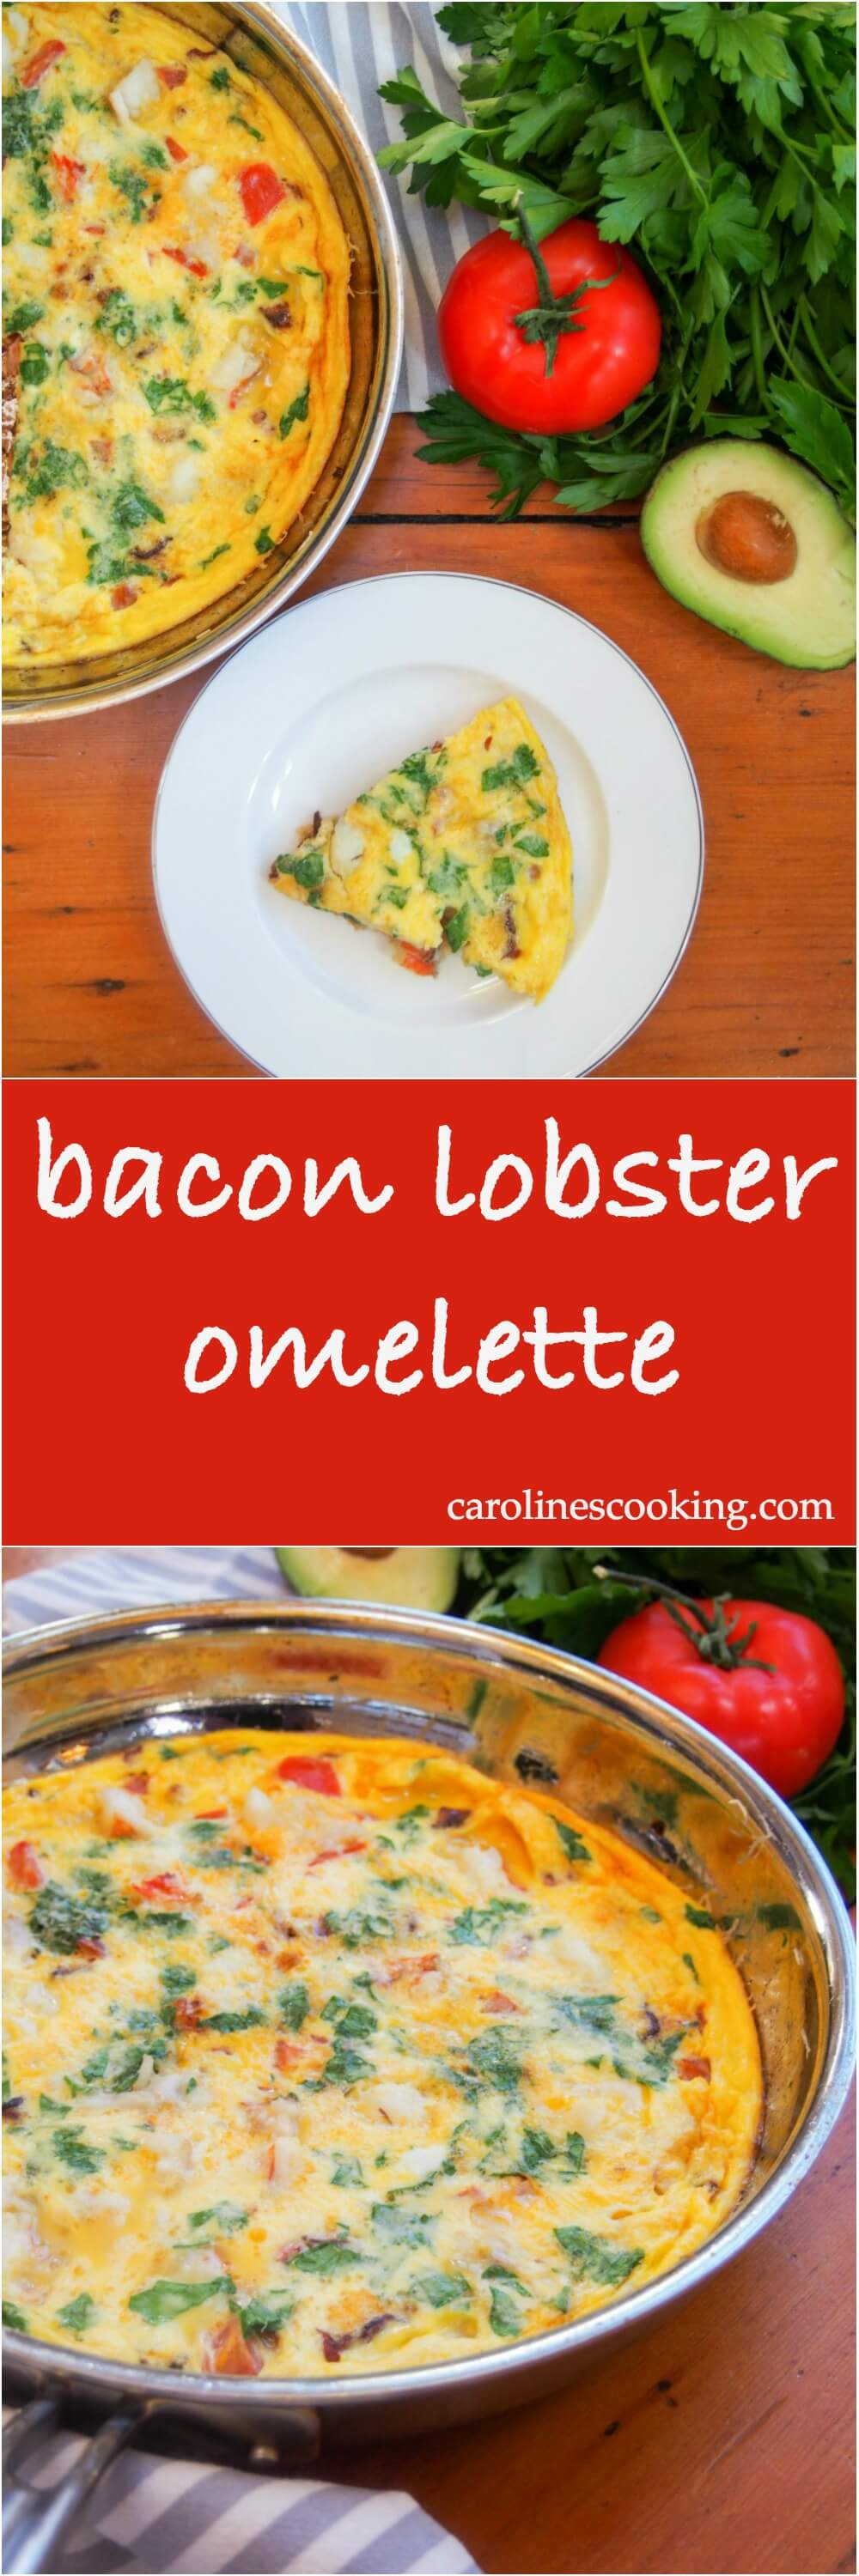 bacon lobster omelette - Whether you're looking for a tasty brunch or easy lunch/dinner, this bacon lobster omelette is easy to make but feels a little indulgent & special. So good!